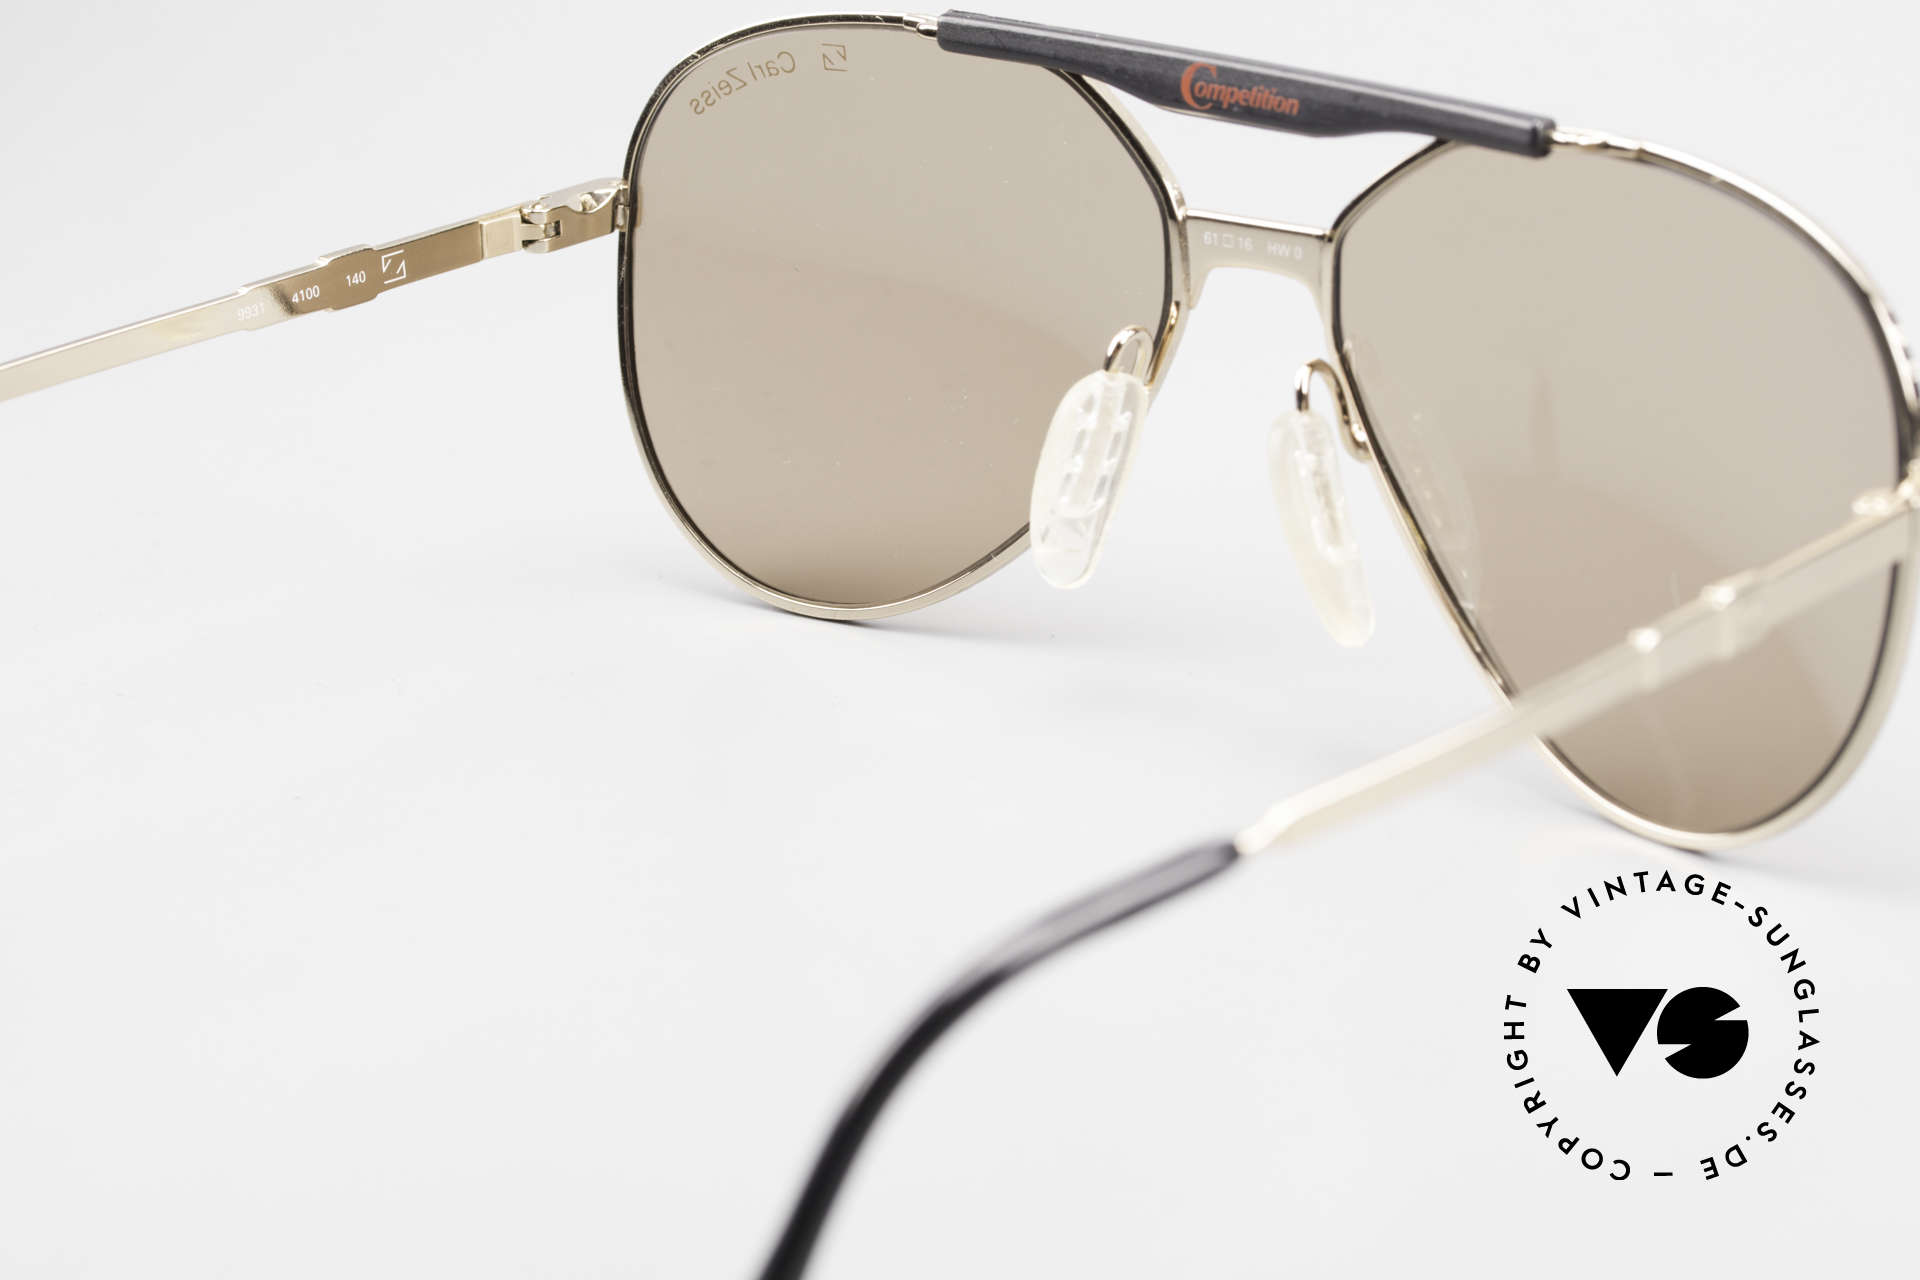 Zeiss 9931 Premium Vintage Sunglasses, NO RETRO shades, but an app. 25 years old Original, Made for Men